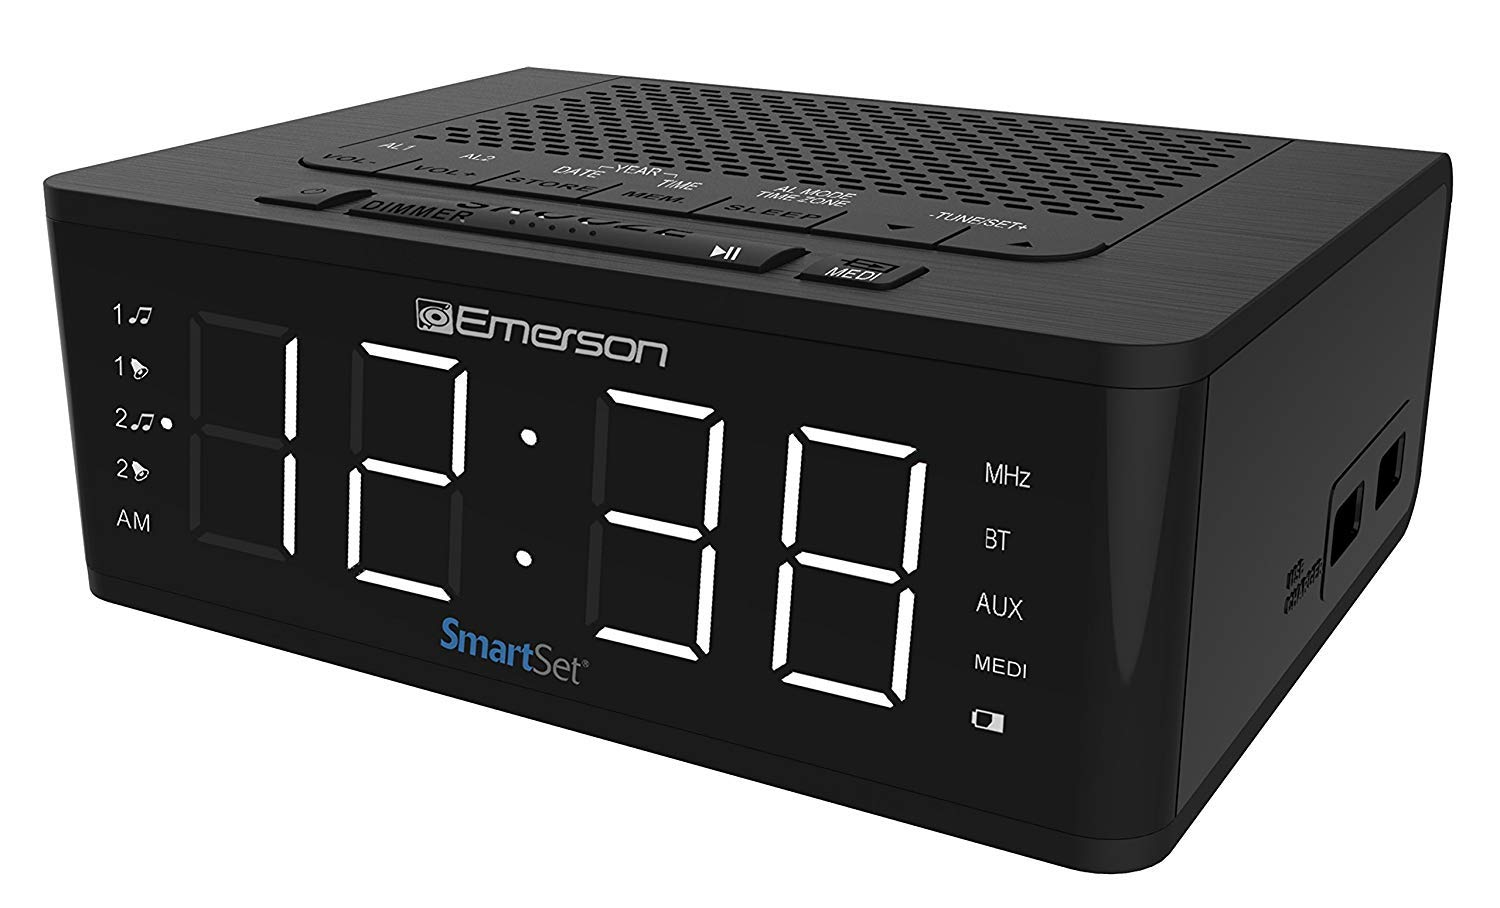 Emerson SmartSet Alarm Clock Radio with Bluetooth Speaker, Charging Station with 2 USB Ports for Iphone/Ipad/Ipod/Android and Tablets, ER100102 (Limited Edition)